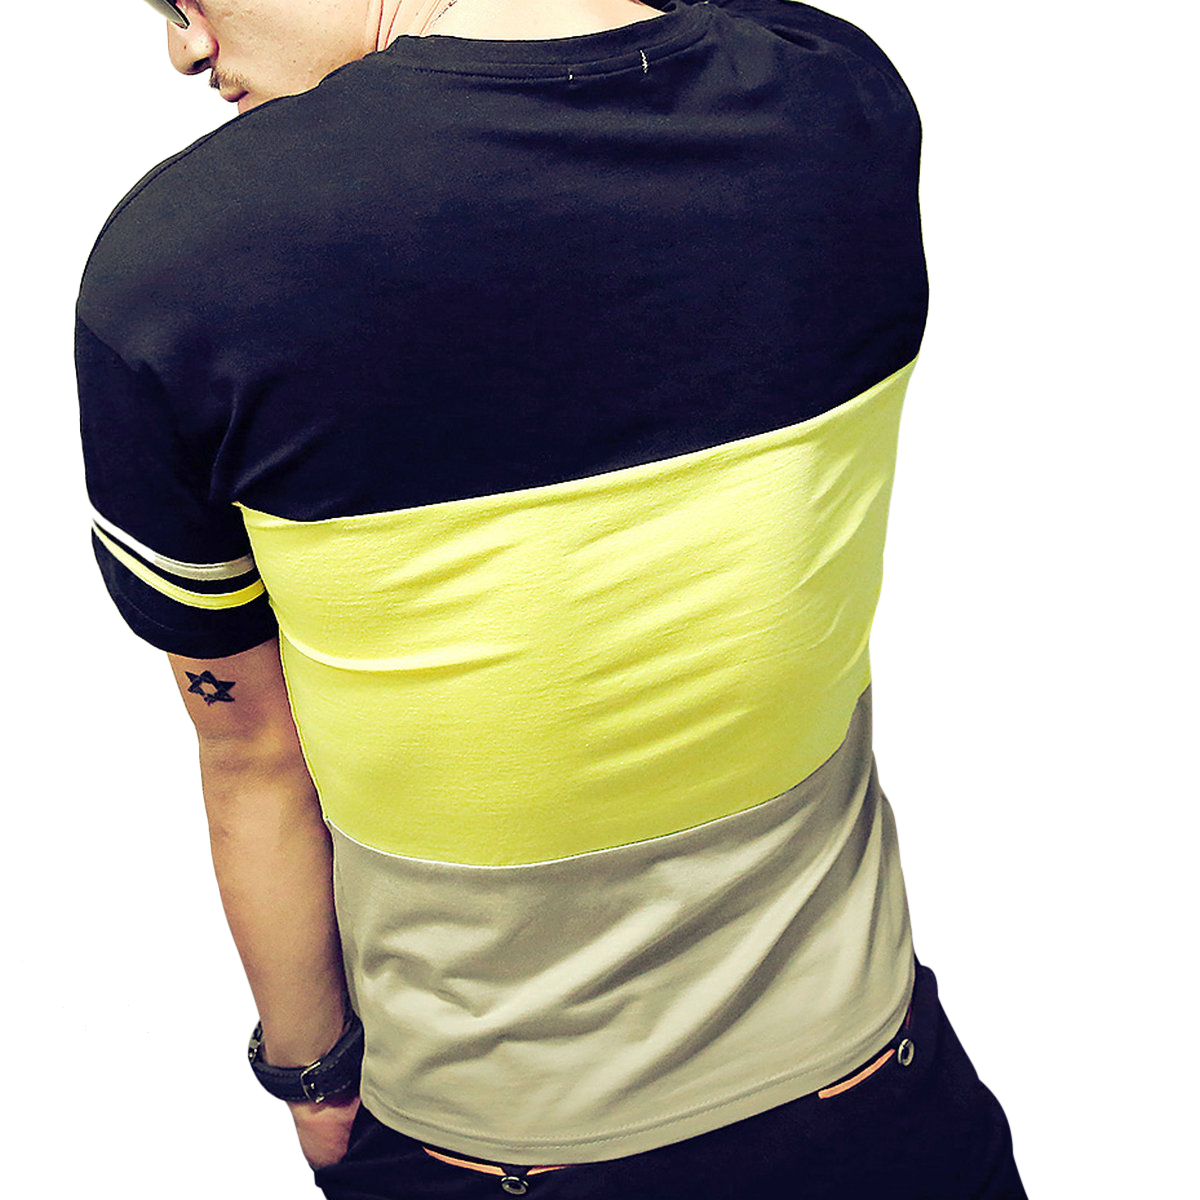 7a344a64d011 Logeeyar Mens Cotton Fitted Short-Sleeve Contrast Color Stitching T-Shirt